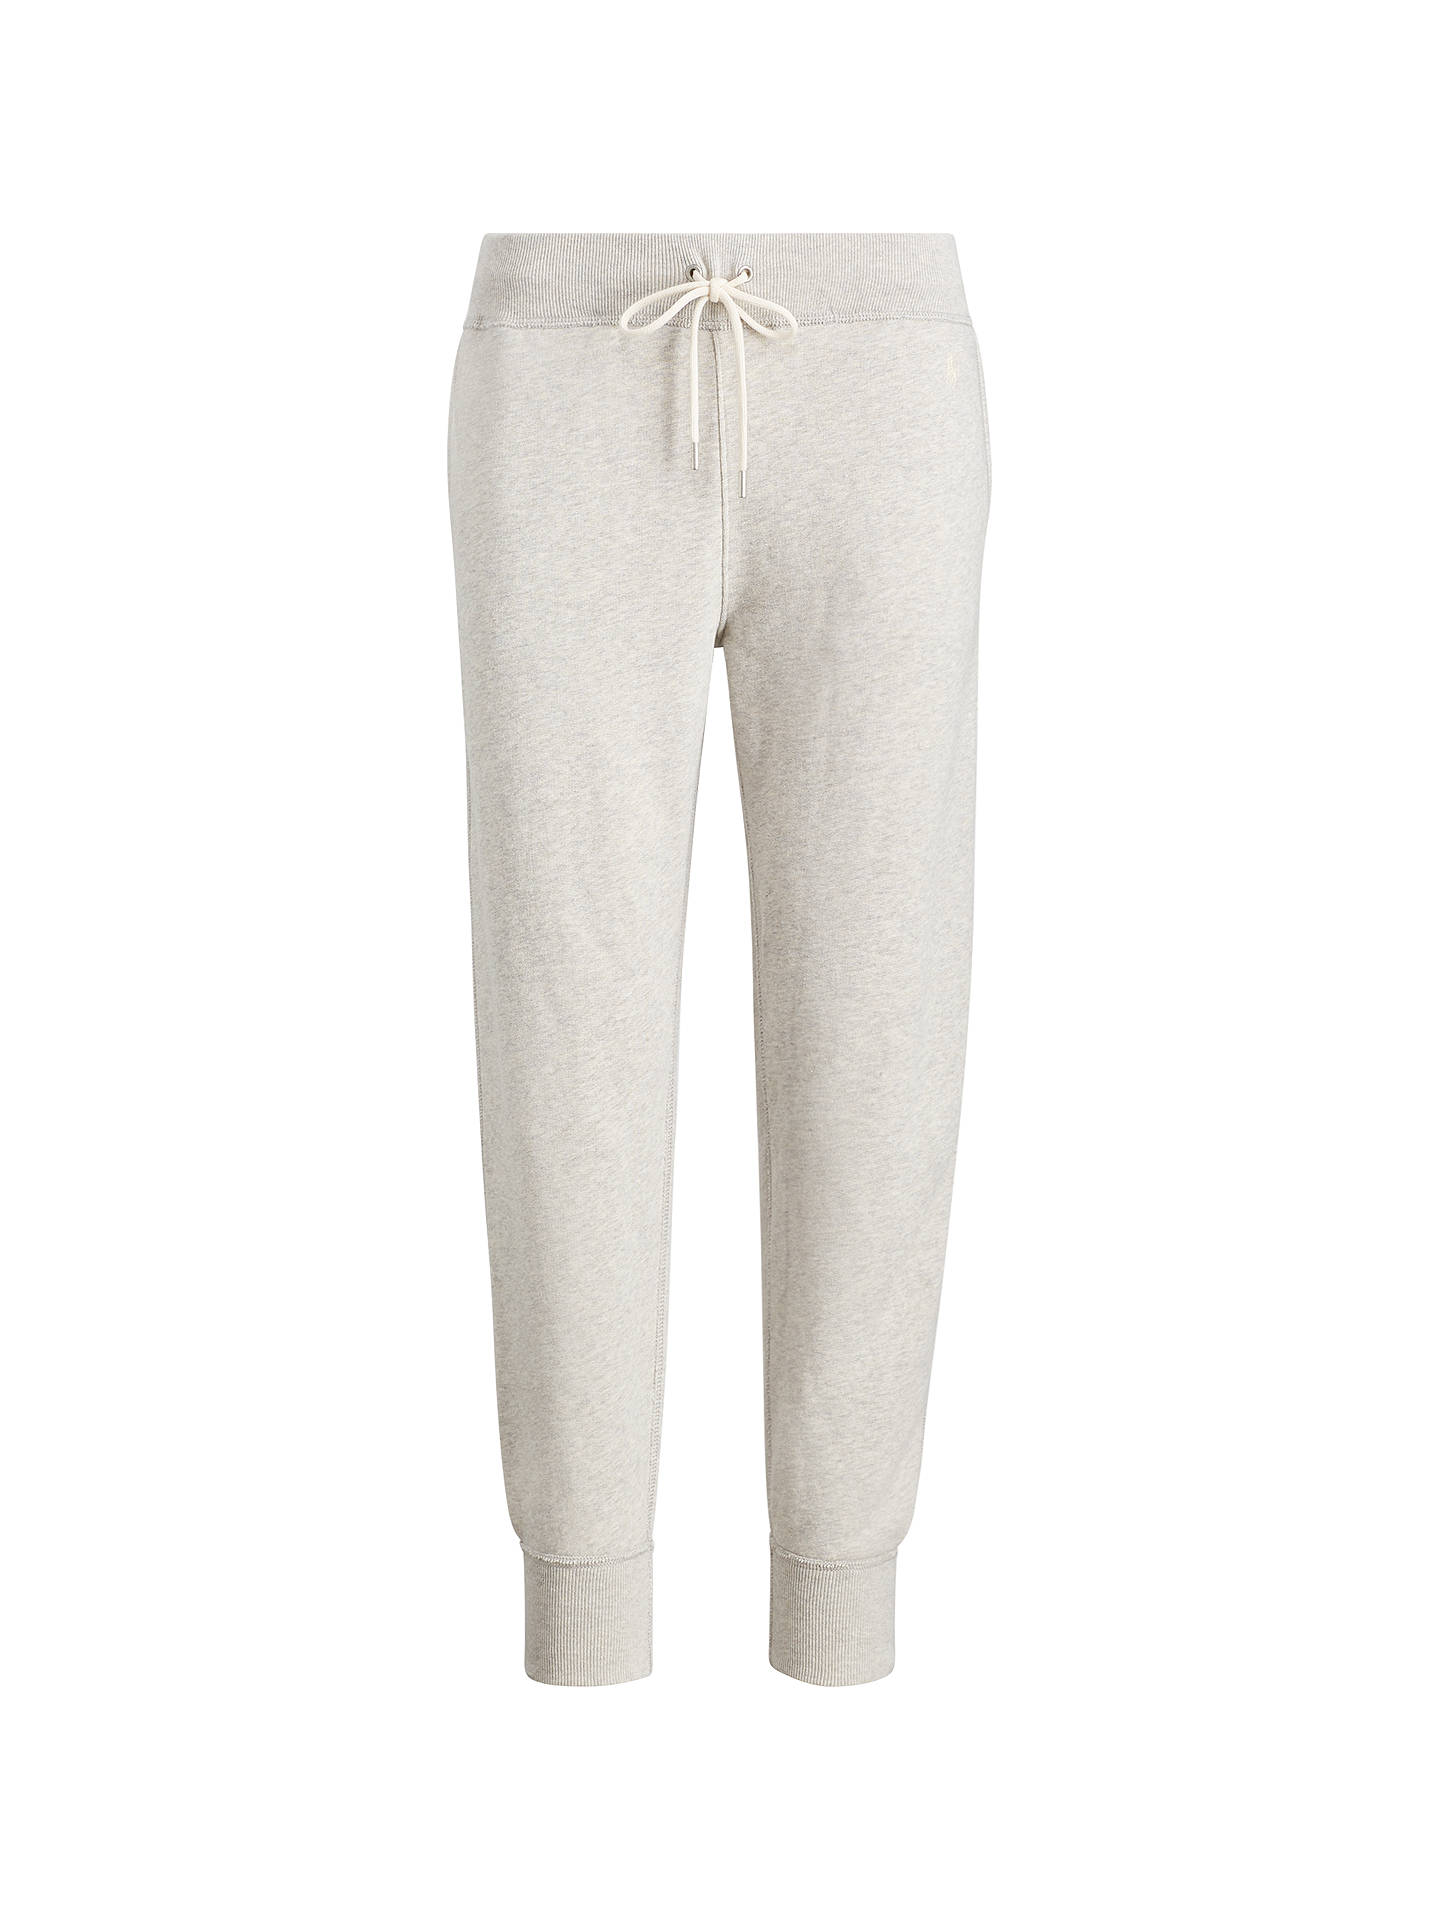 BuyPolo Ralph Lauren Fleece Jogger Bottoms, Light Sport Heather, XS Online at johnlewis.com